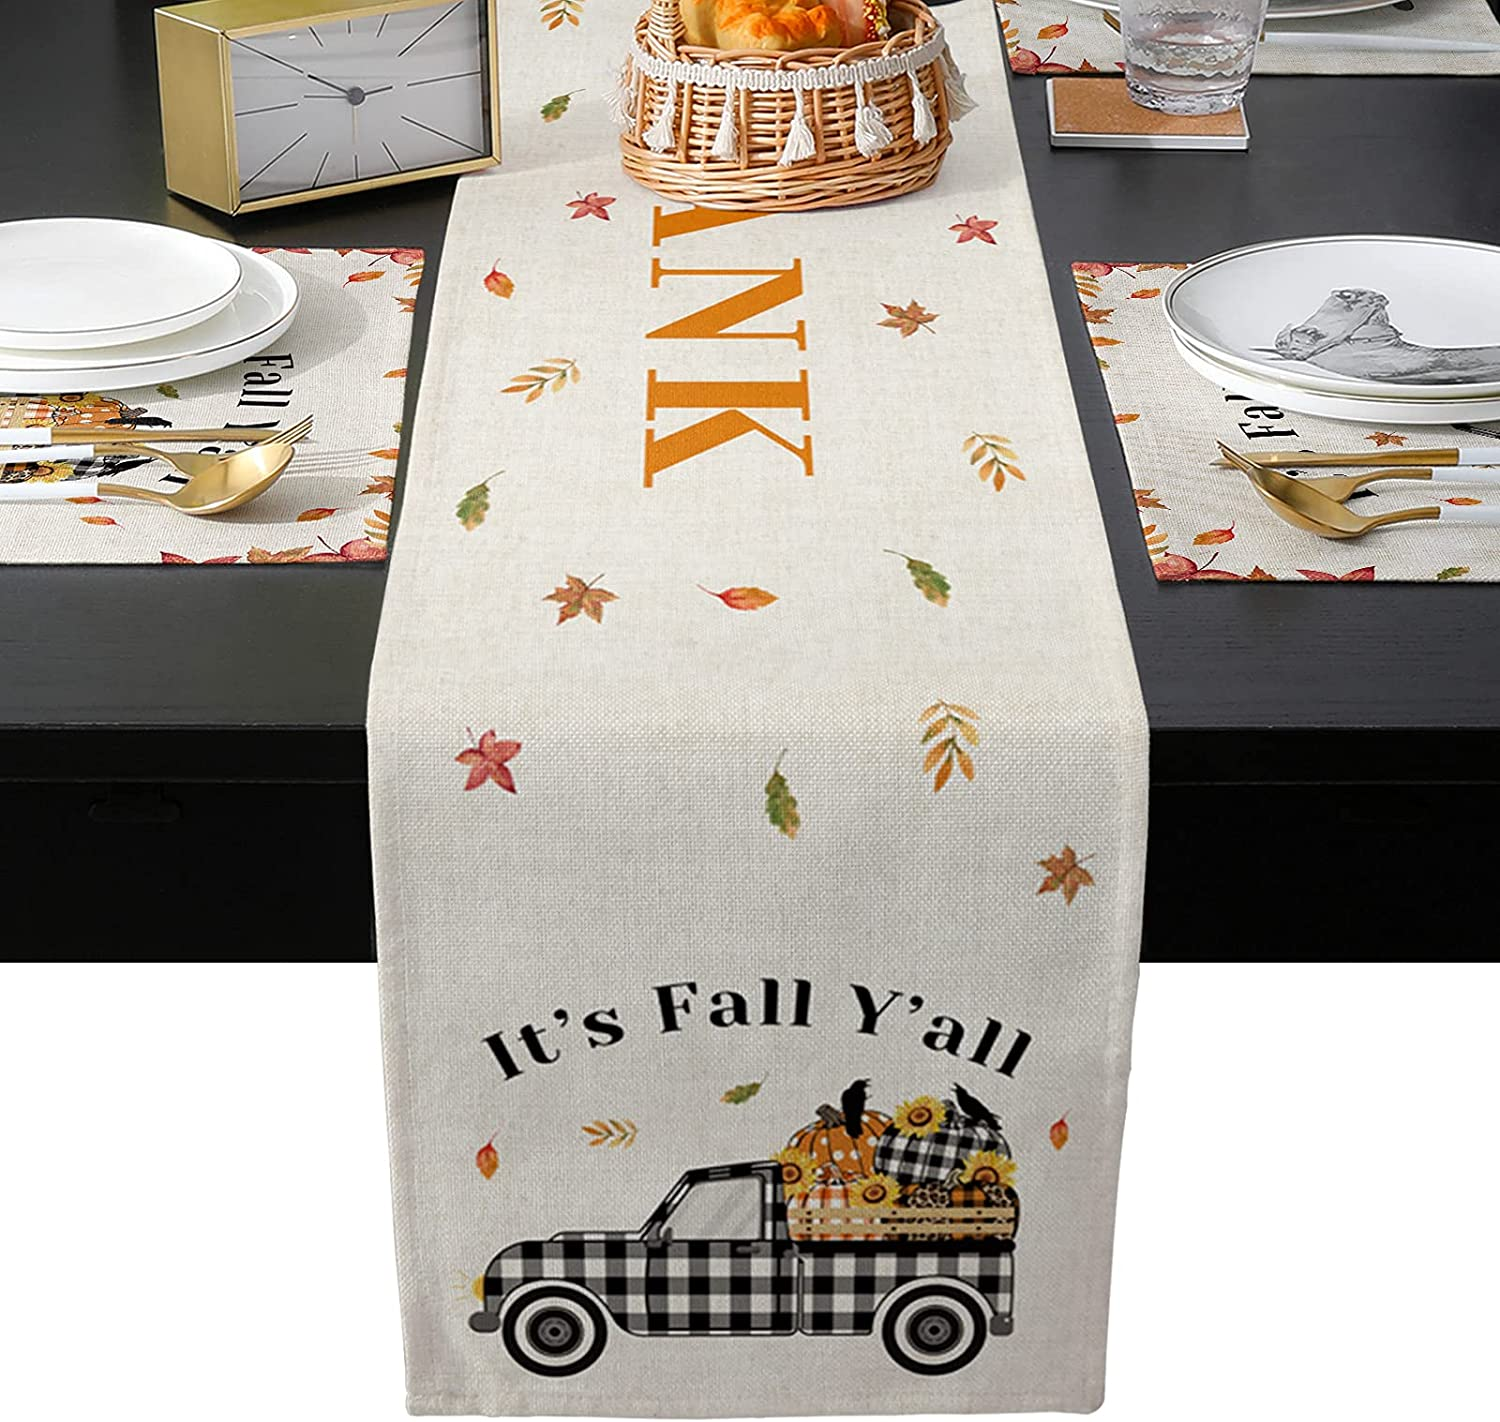 Table Runner Sets with 6 Autumn Thanksgiving T 25% OFF Pumpkin Memphis Mall Placemats